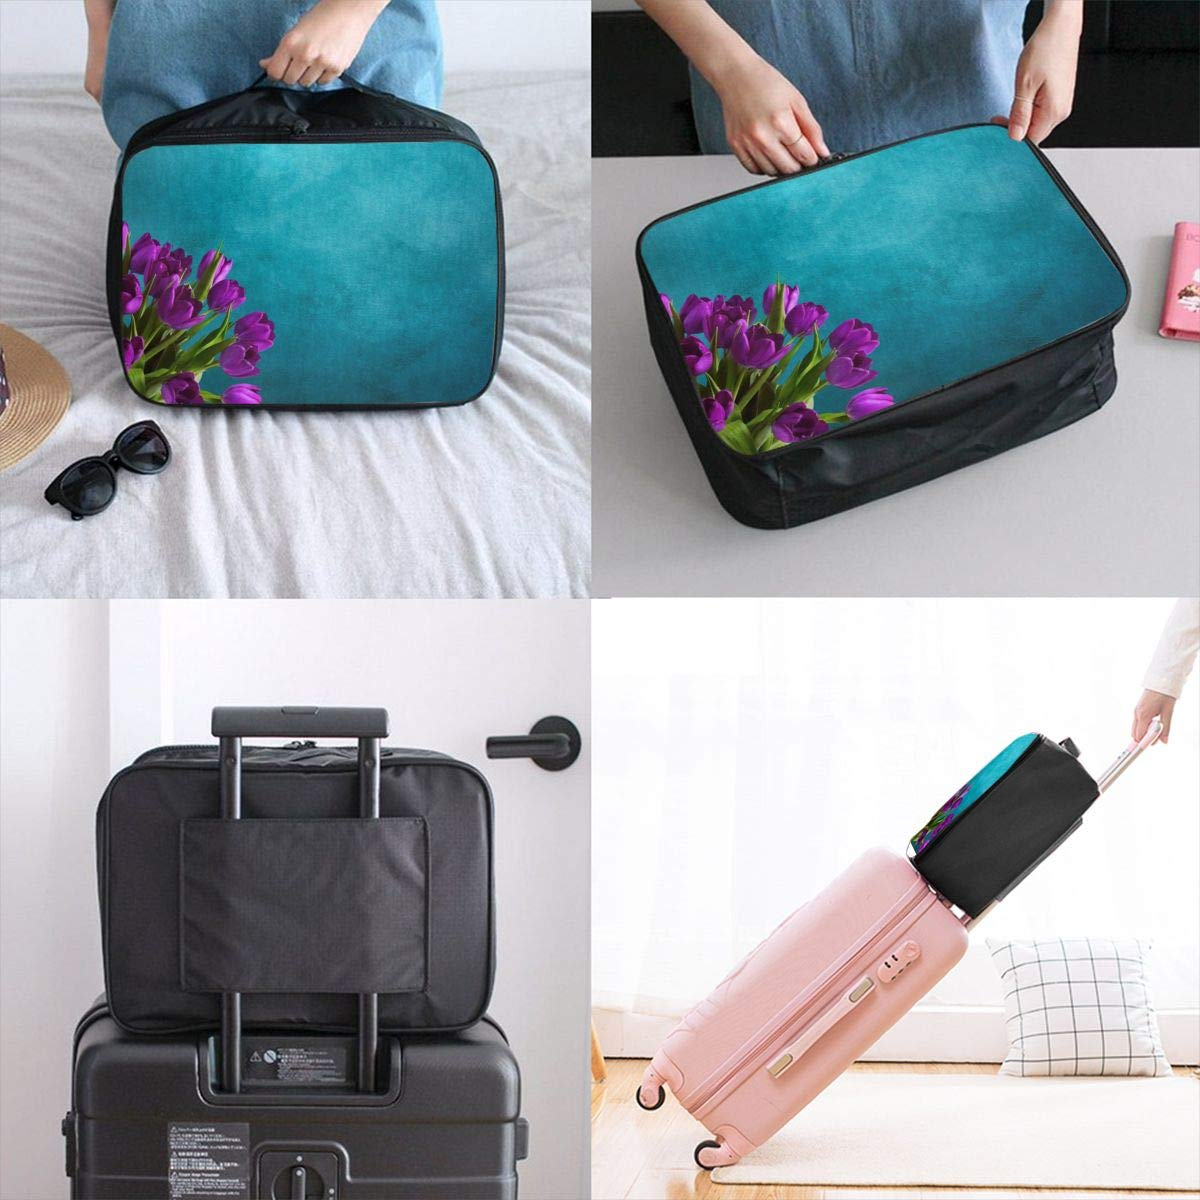 Tulip Flower Purple Retro Decoration Travel Lightweight Waterproof Foldable Storage Carry Luggage Large Capacity Portable Luggage Bag Duffel Bag